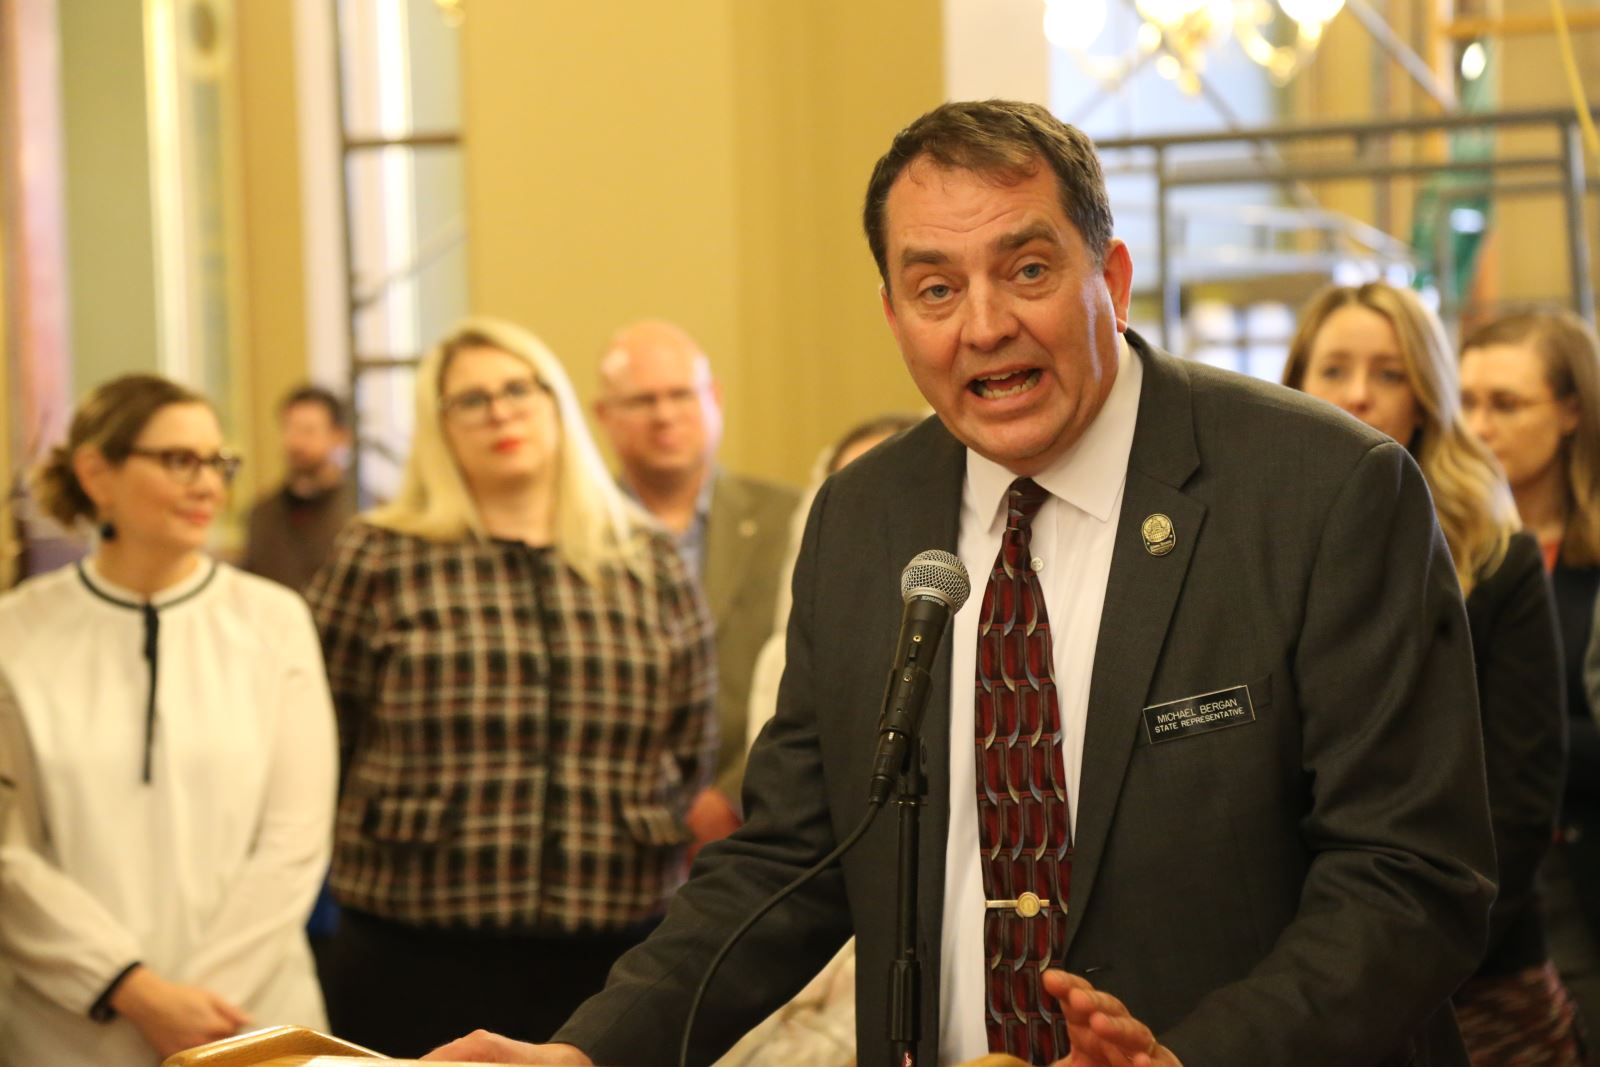 Rep. Michael Bergan speaks at Enviro Lobby Day 2020